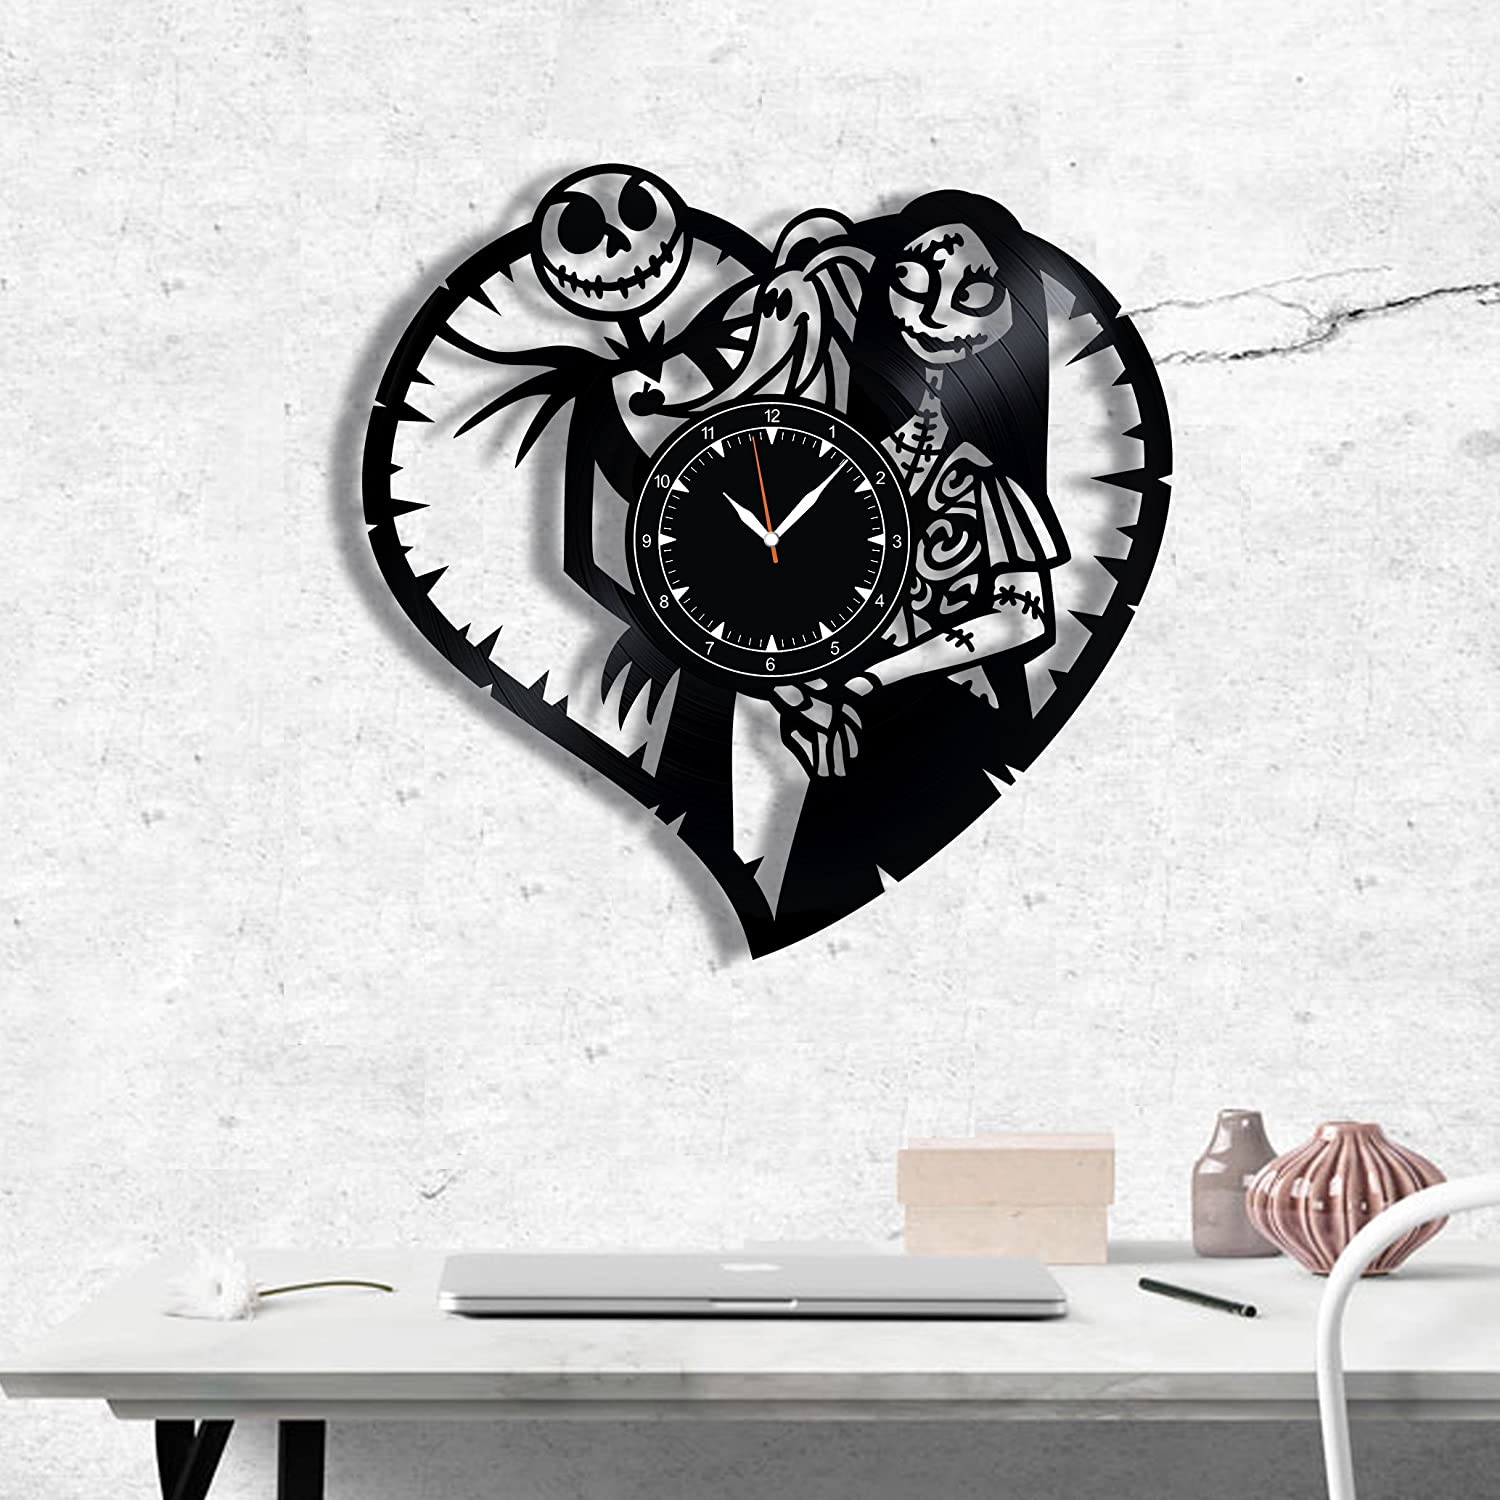 SofiClock Nightmare Before Christmas Vinyl Record Wall Clock 12 , The Best Gift for Decor B B